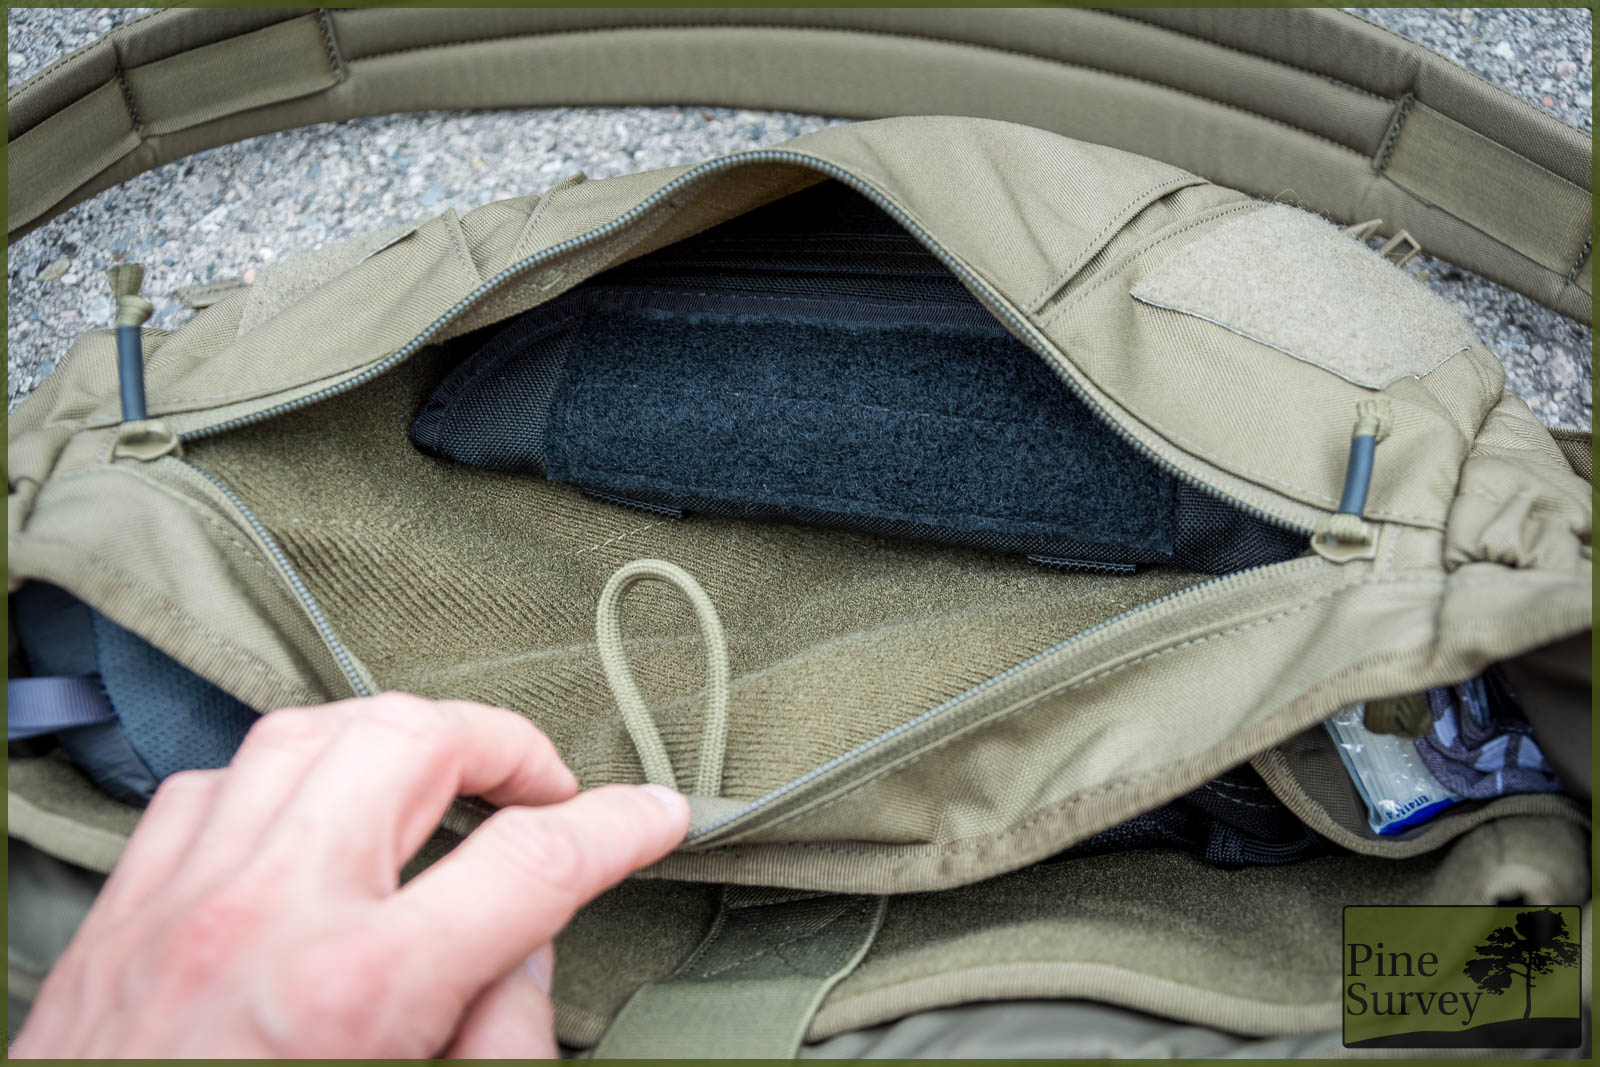 63d0de84a86a The inside of the bellow pocket. Note the velcro-like fabric and paracord  loop.